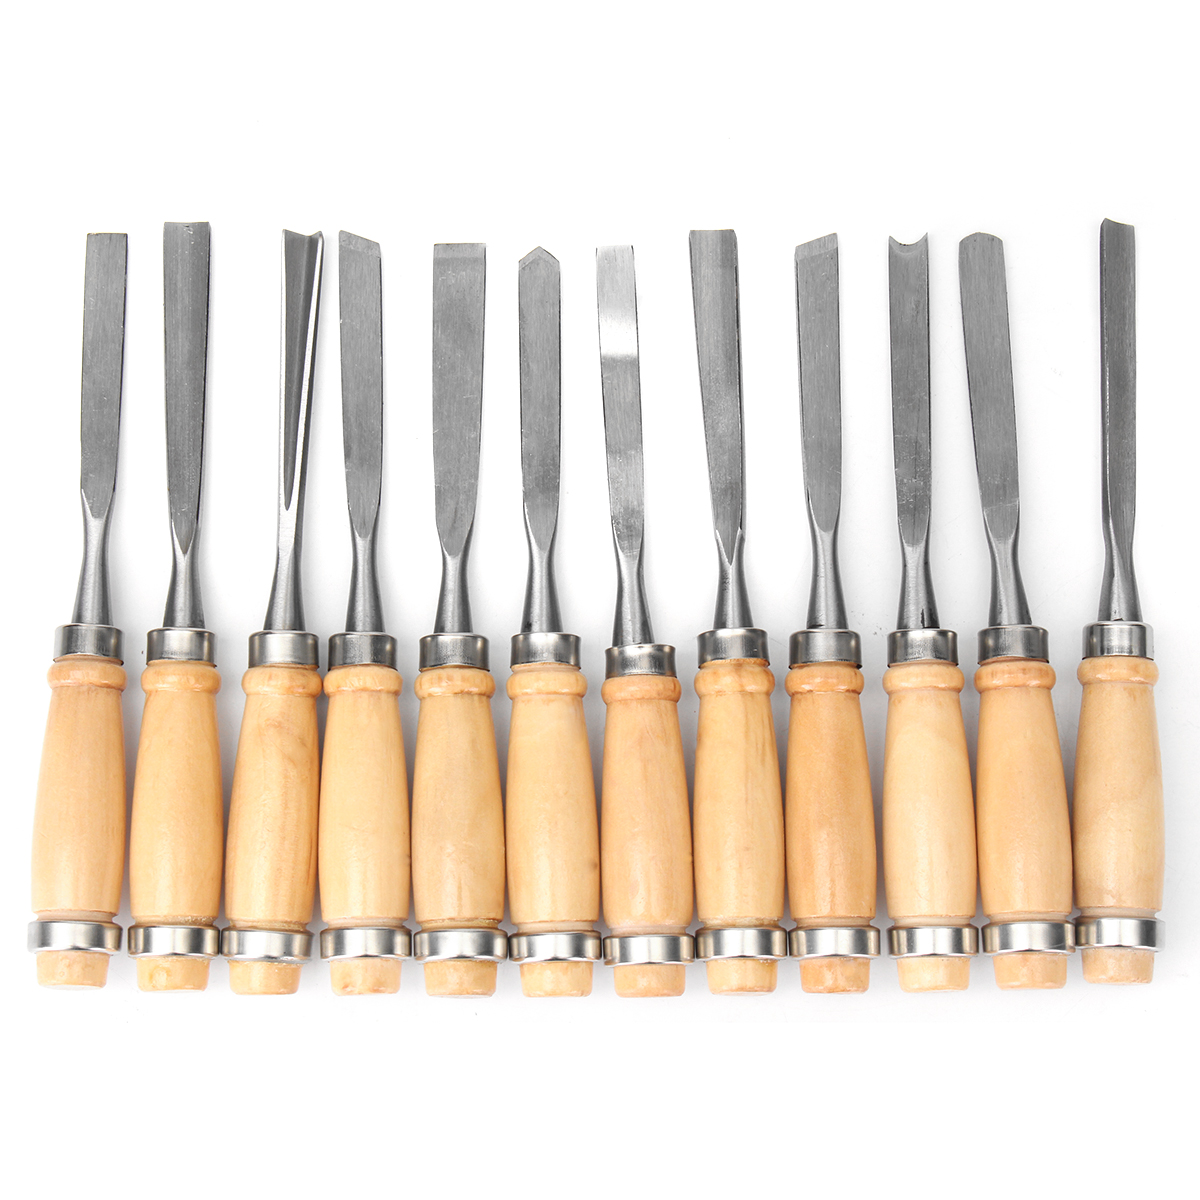 12pcs Wood Carving Hand Chisel Tool Set Professional Wood Working Gouges Steel